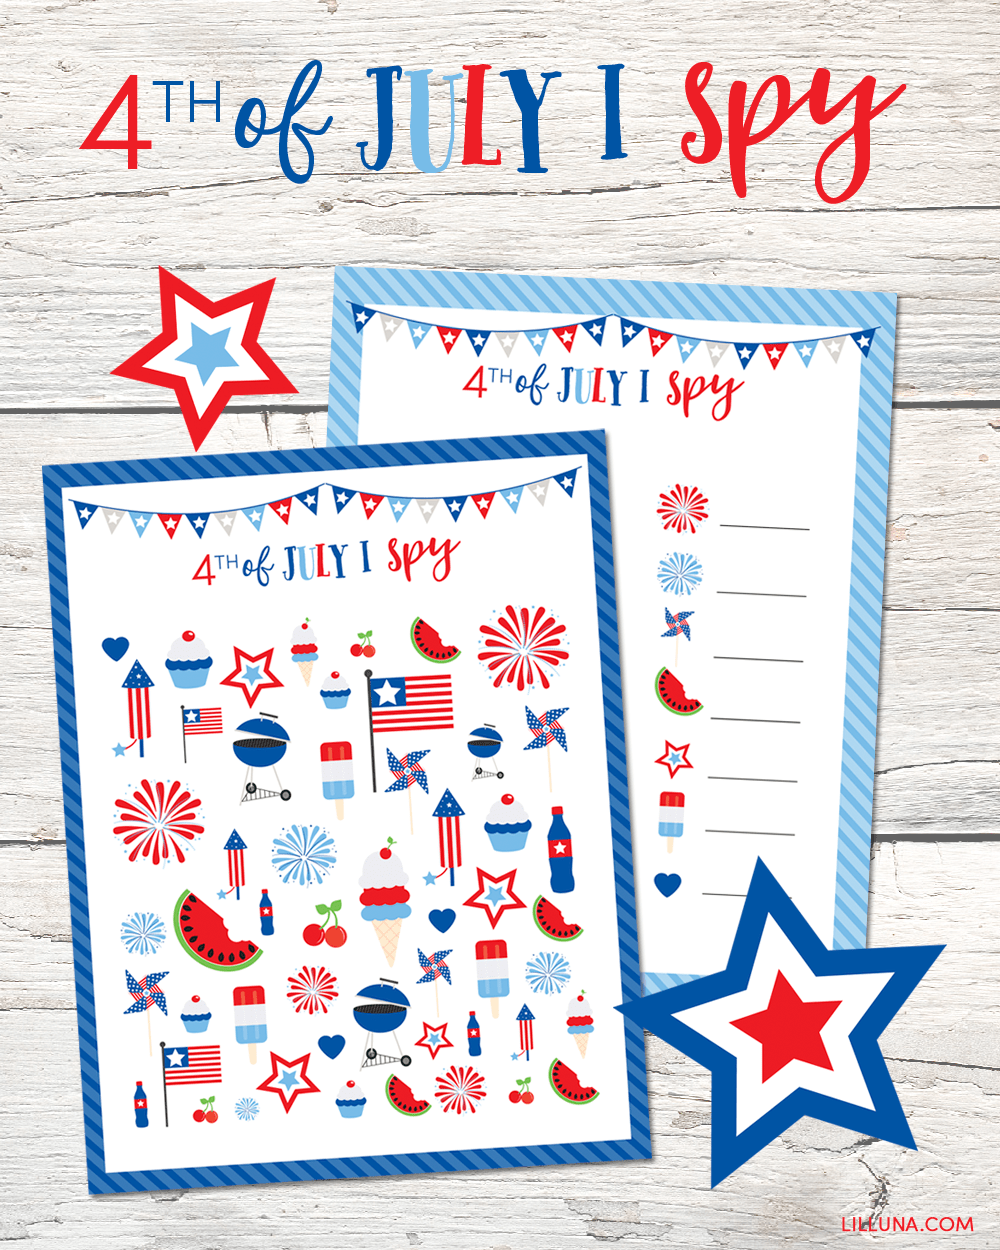 photo relating to I Spy Printable called 4th of July I Spy Printable - Lil Luna